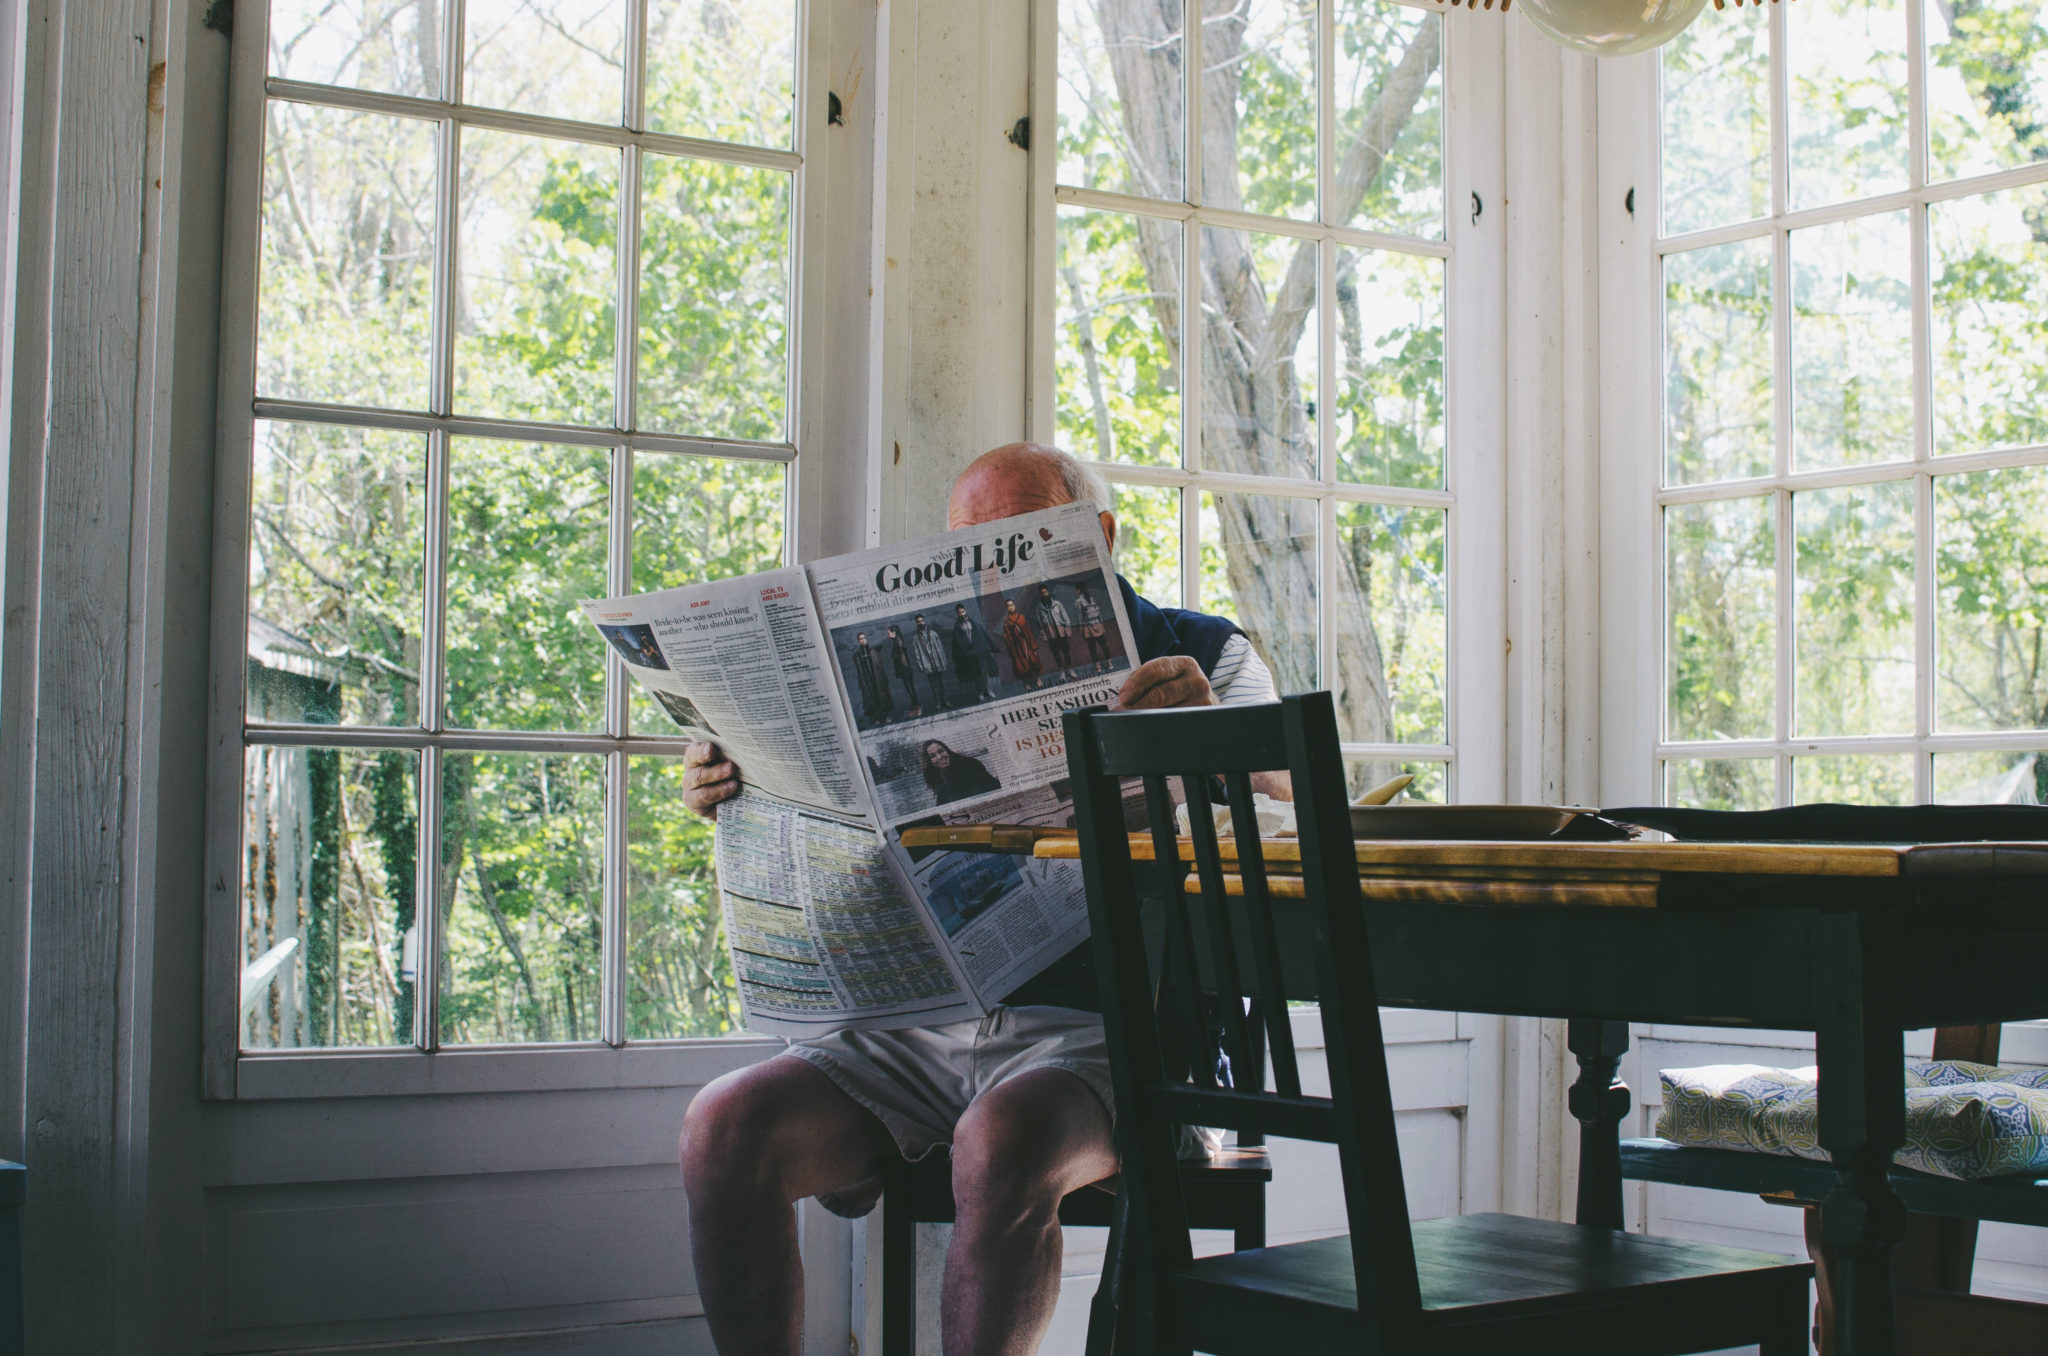 How Do We Deal With Dementia Denial